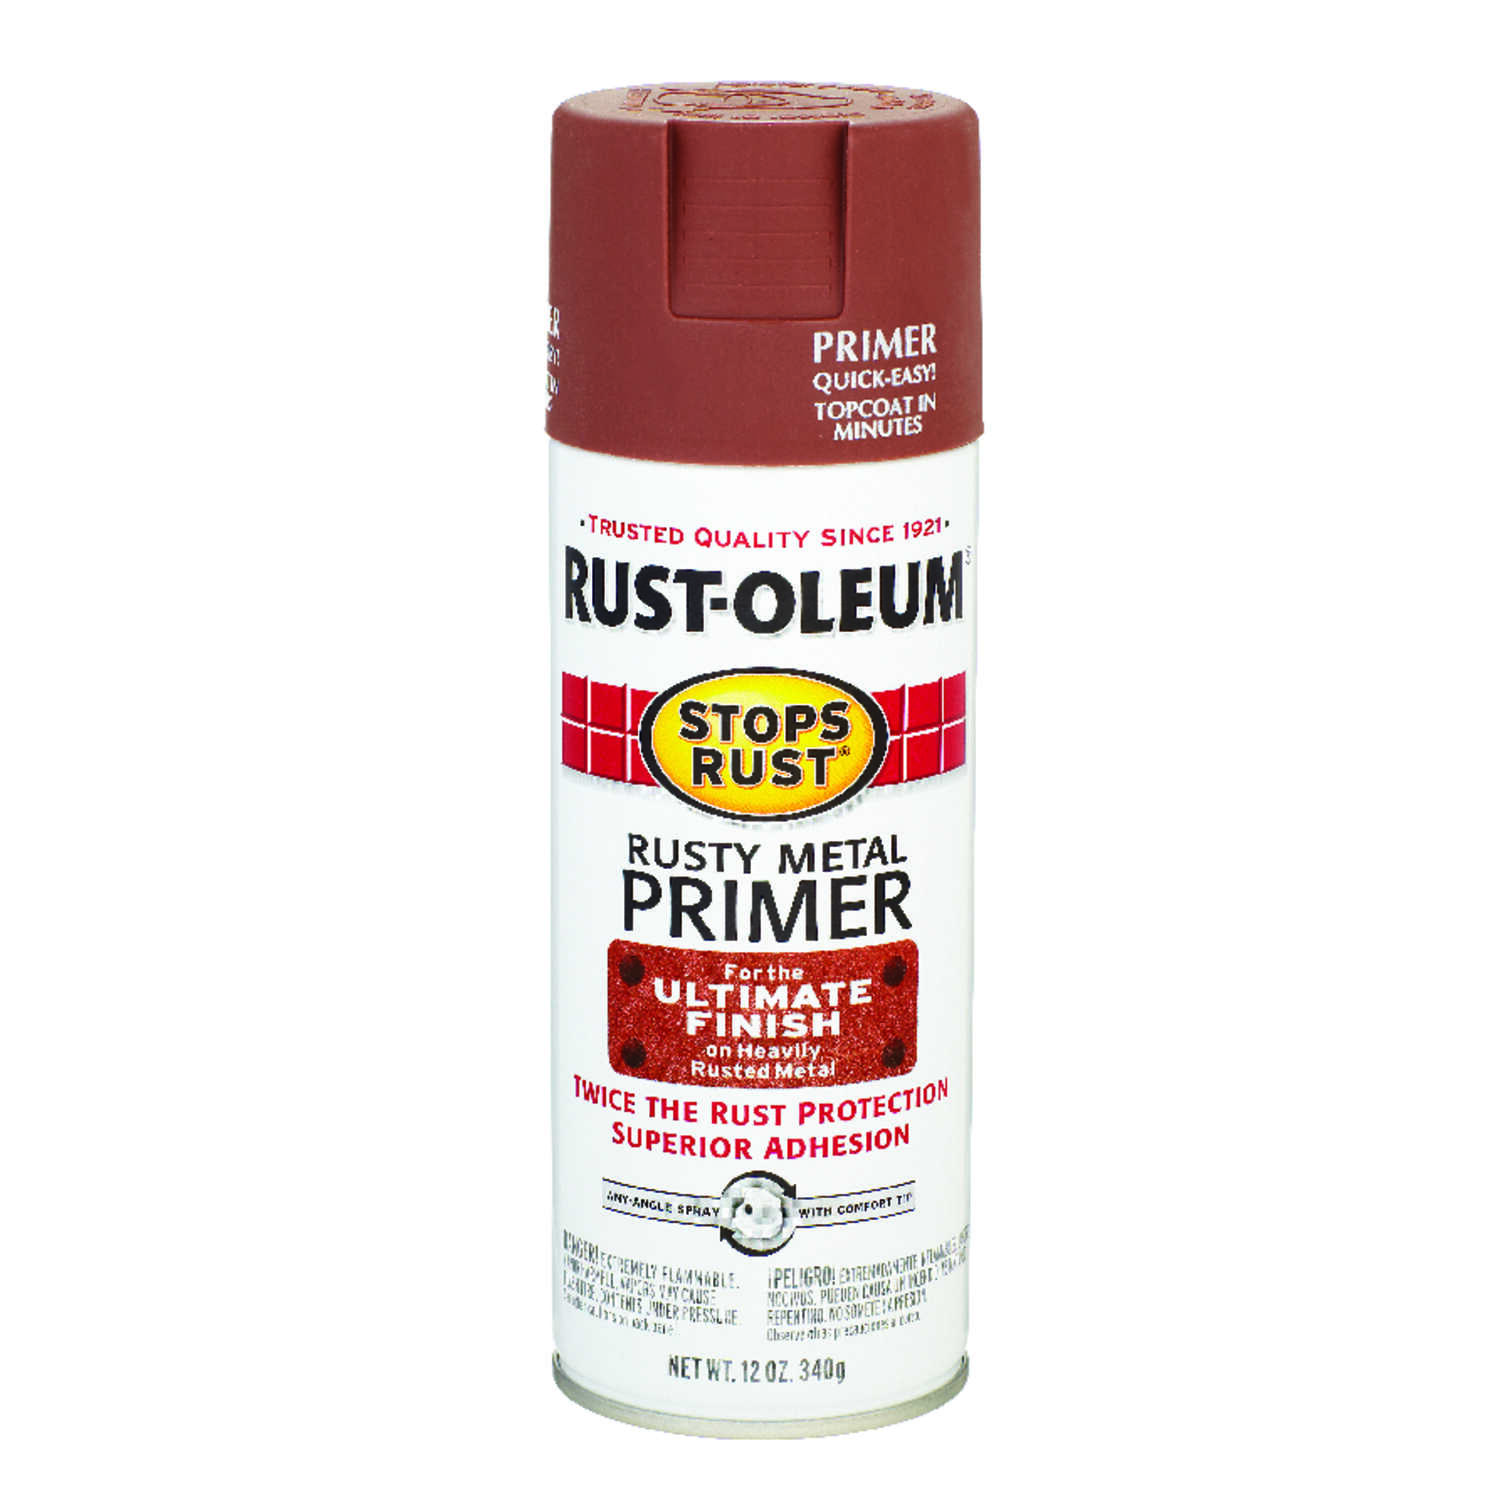 Rust-Oleum  Stops Rust  Brown  Primer  For Metals 12 oz.